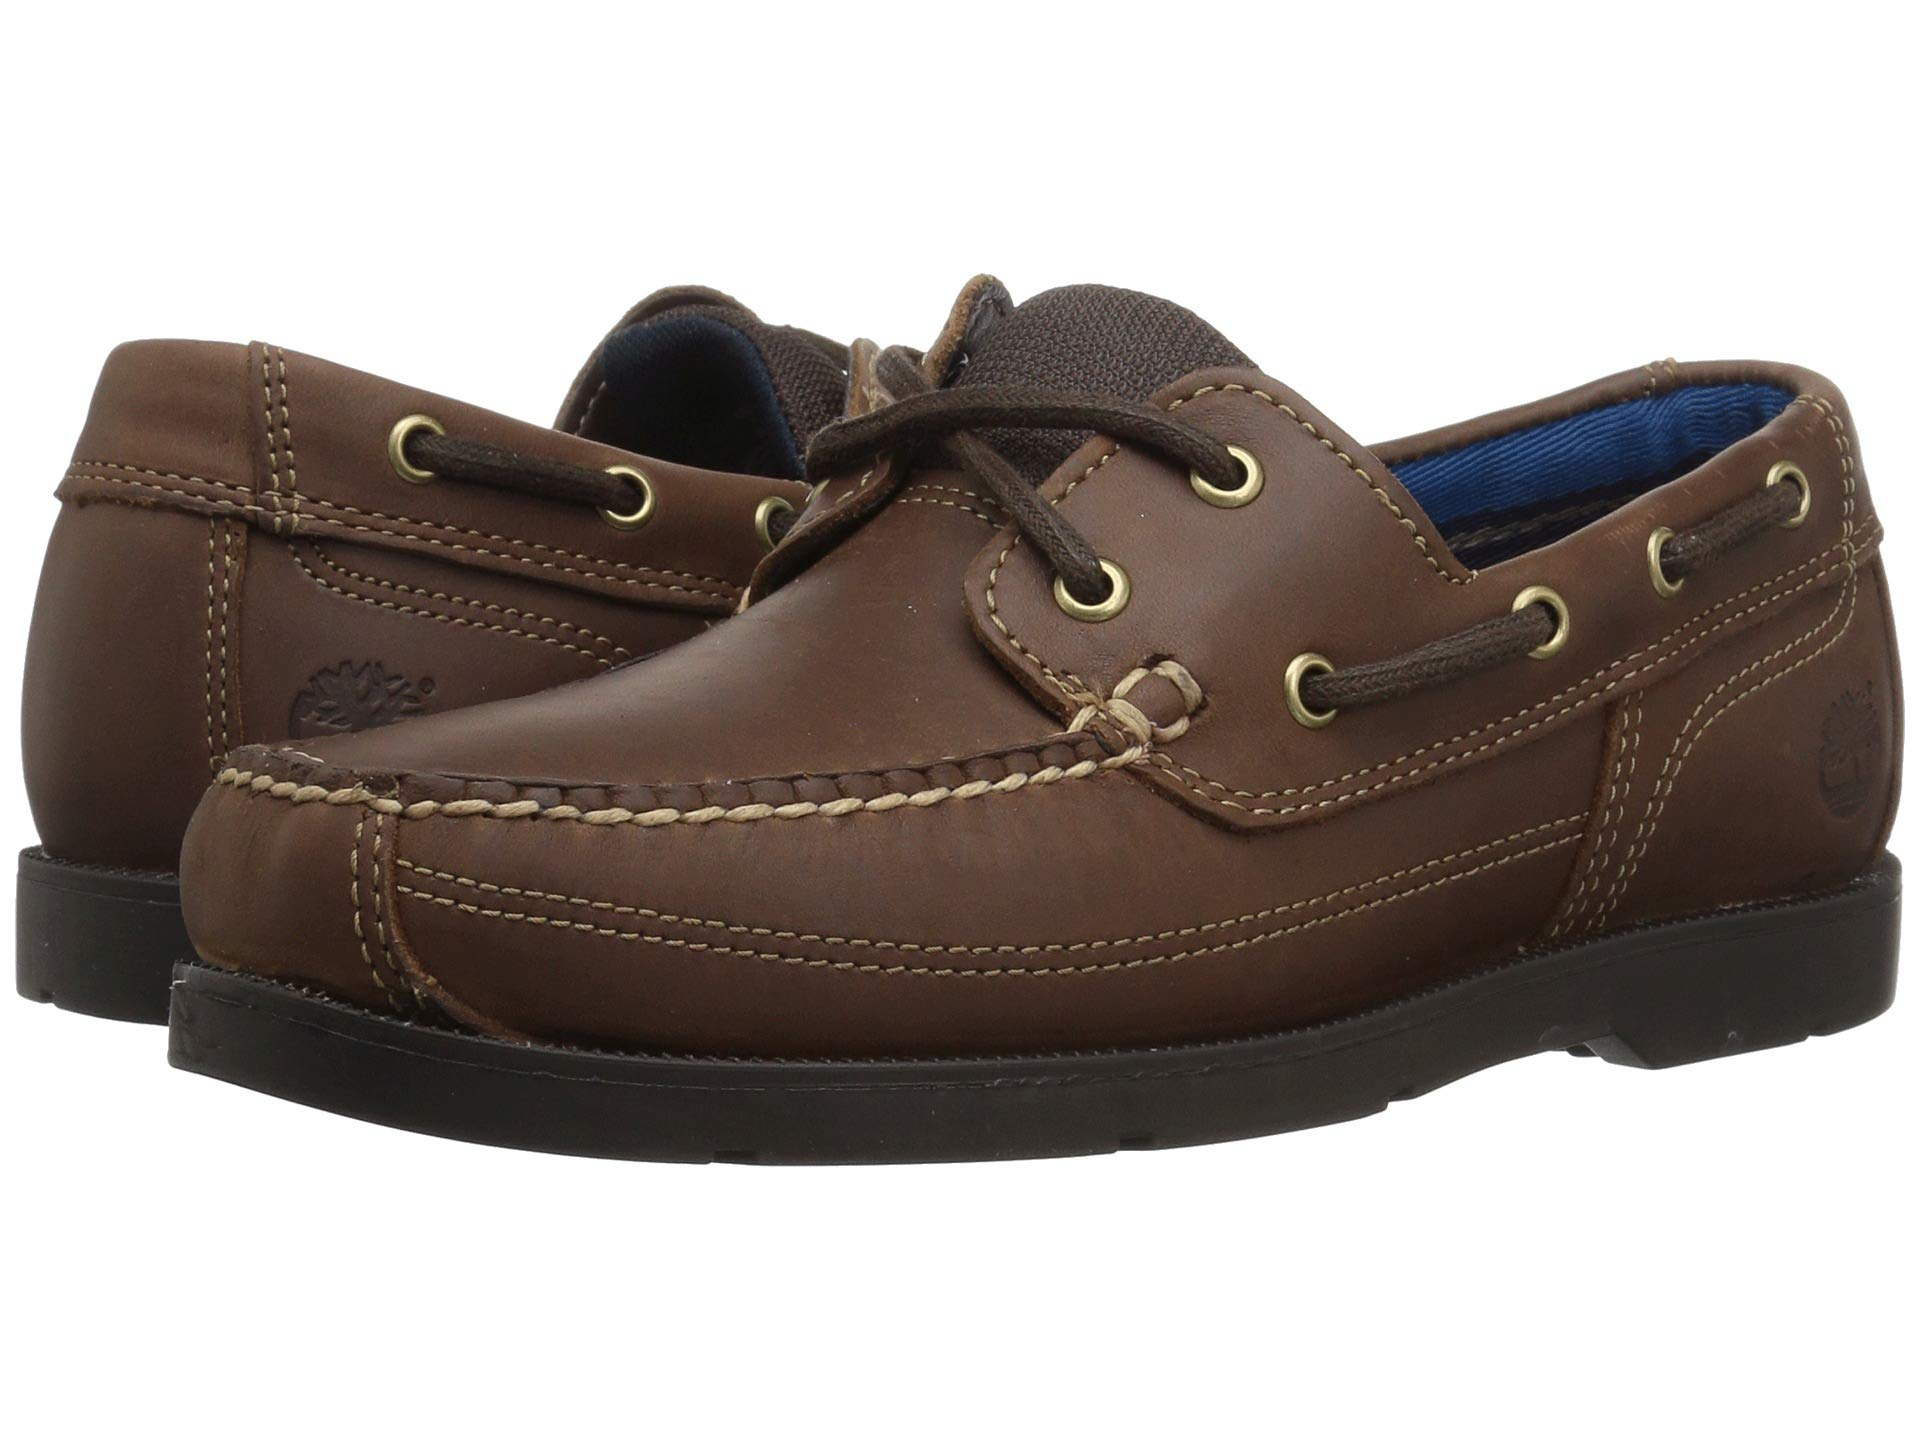 Shoe Oiled Cove Brown Full Grain Leather Boat Piper Timberland 5IxAYq1w